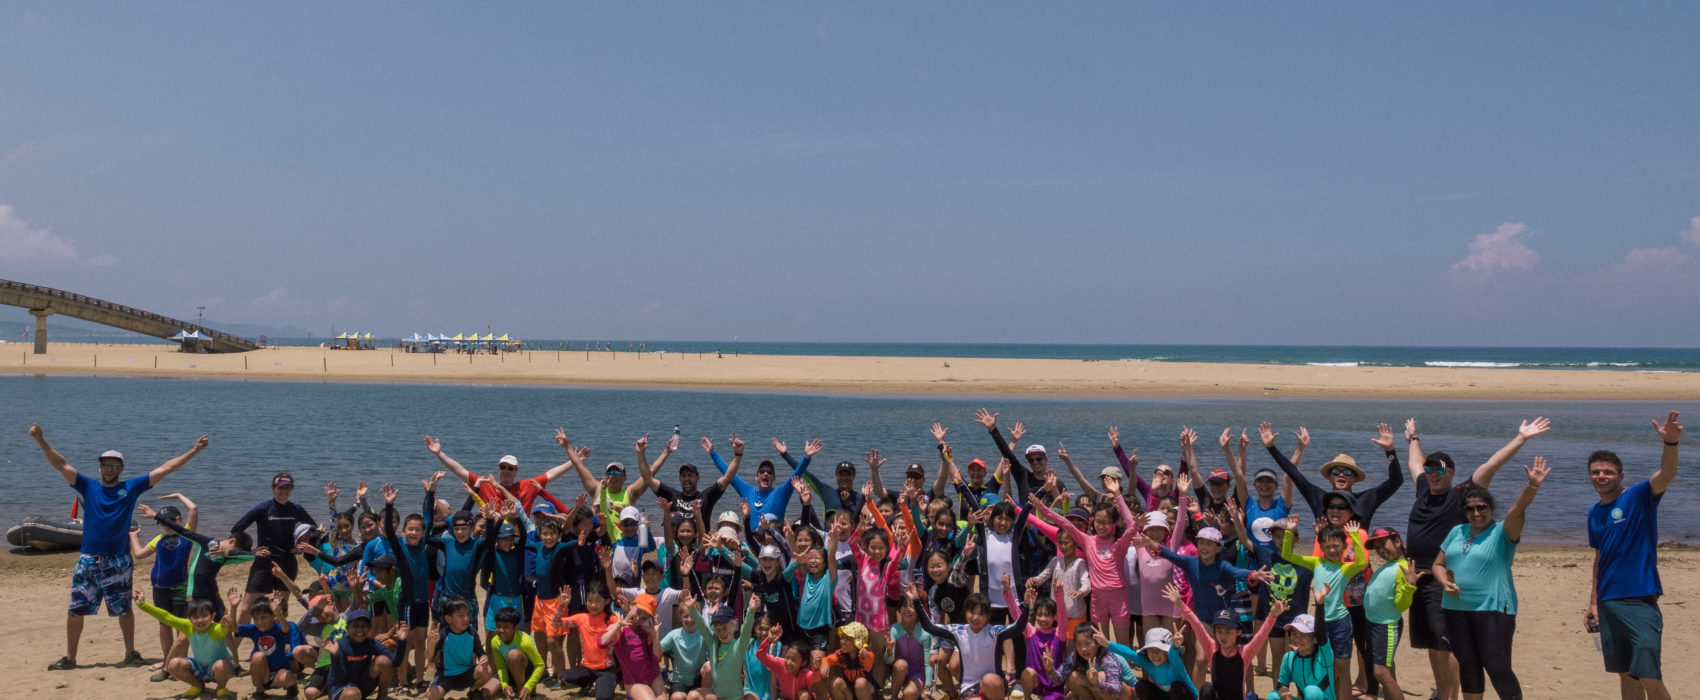 School Trip for Watersports at the Beach